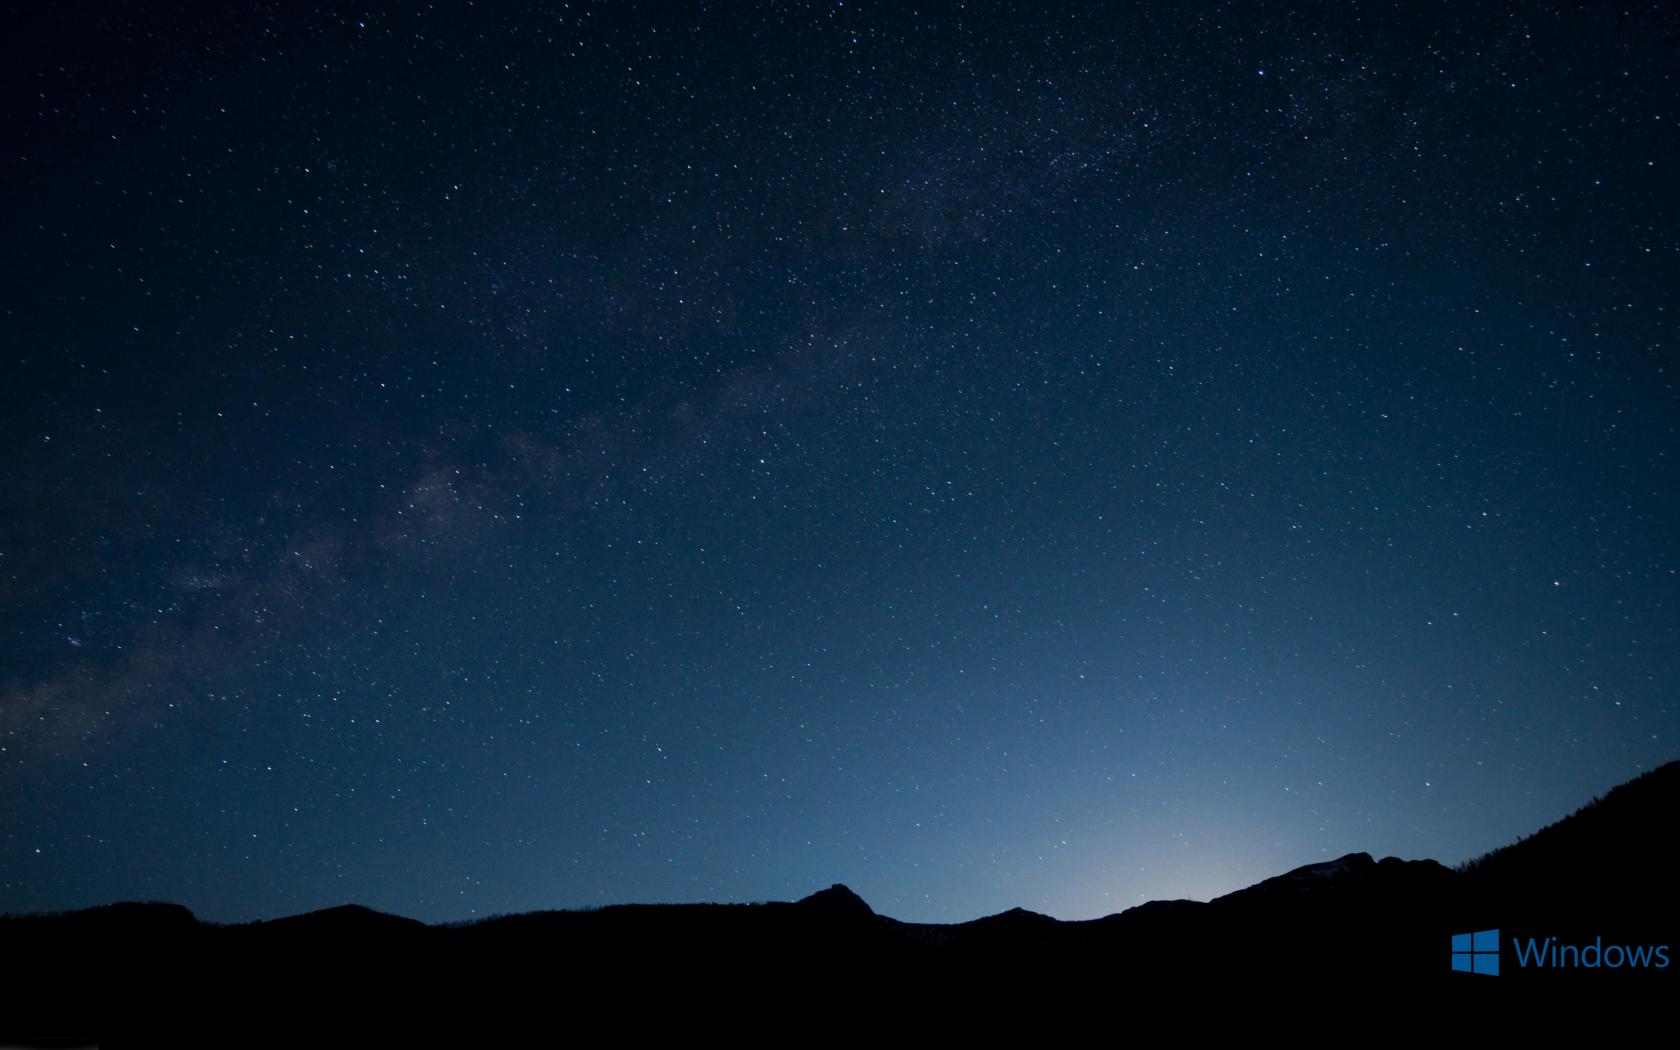 Windows 10 Wallpaper With Night Sky Background